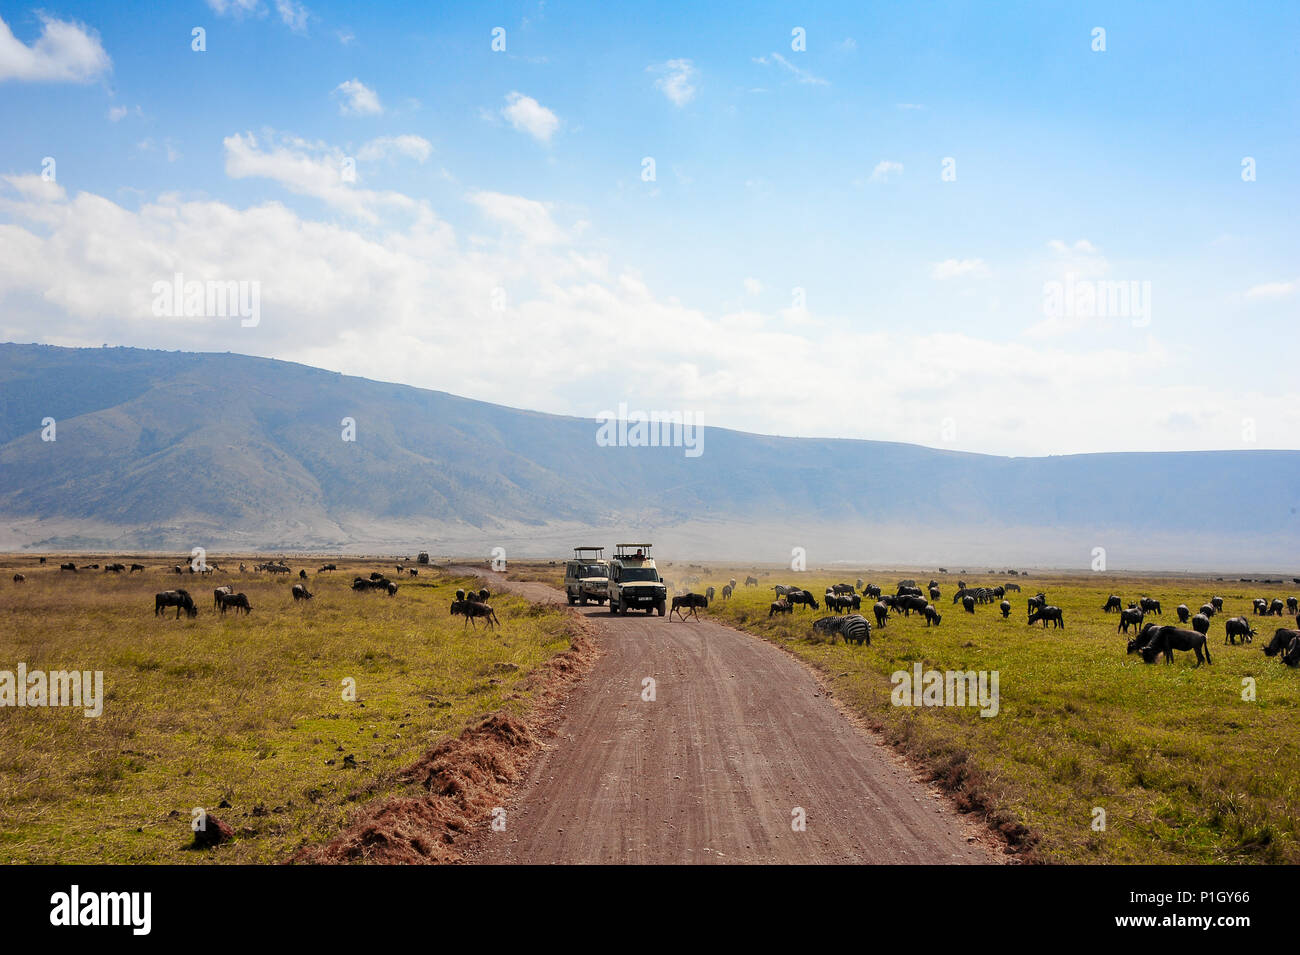 Wildebeest and zebra graze on a dusty plain infront of waiting safari vehicles.  Ngorongoro National Park, Tanzania, Africa - Stock Image